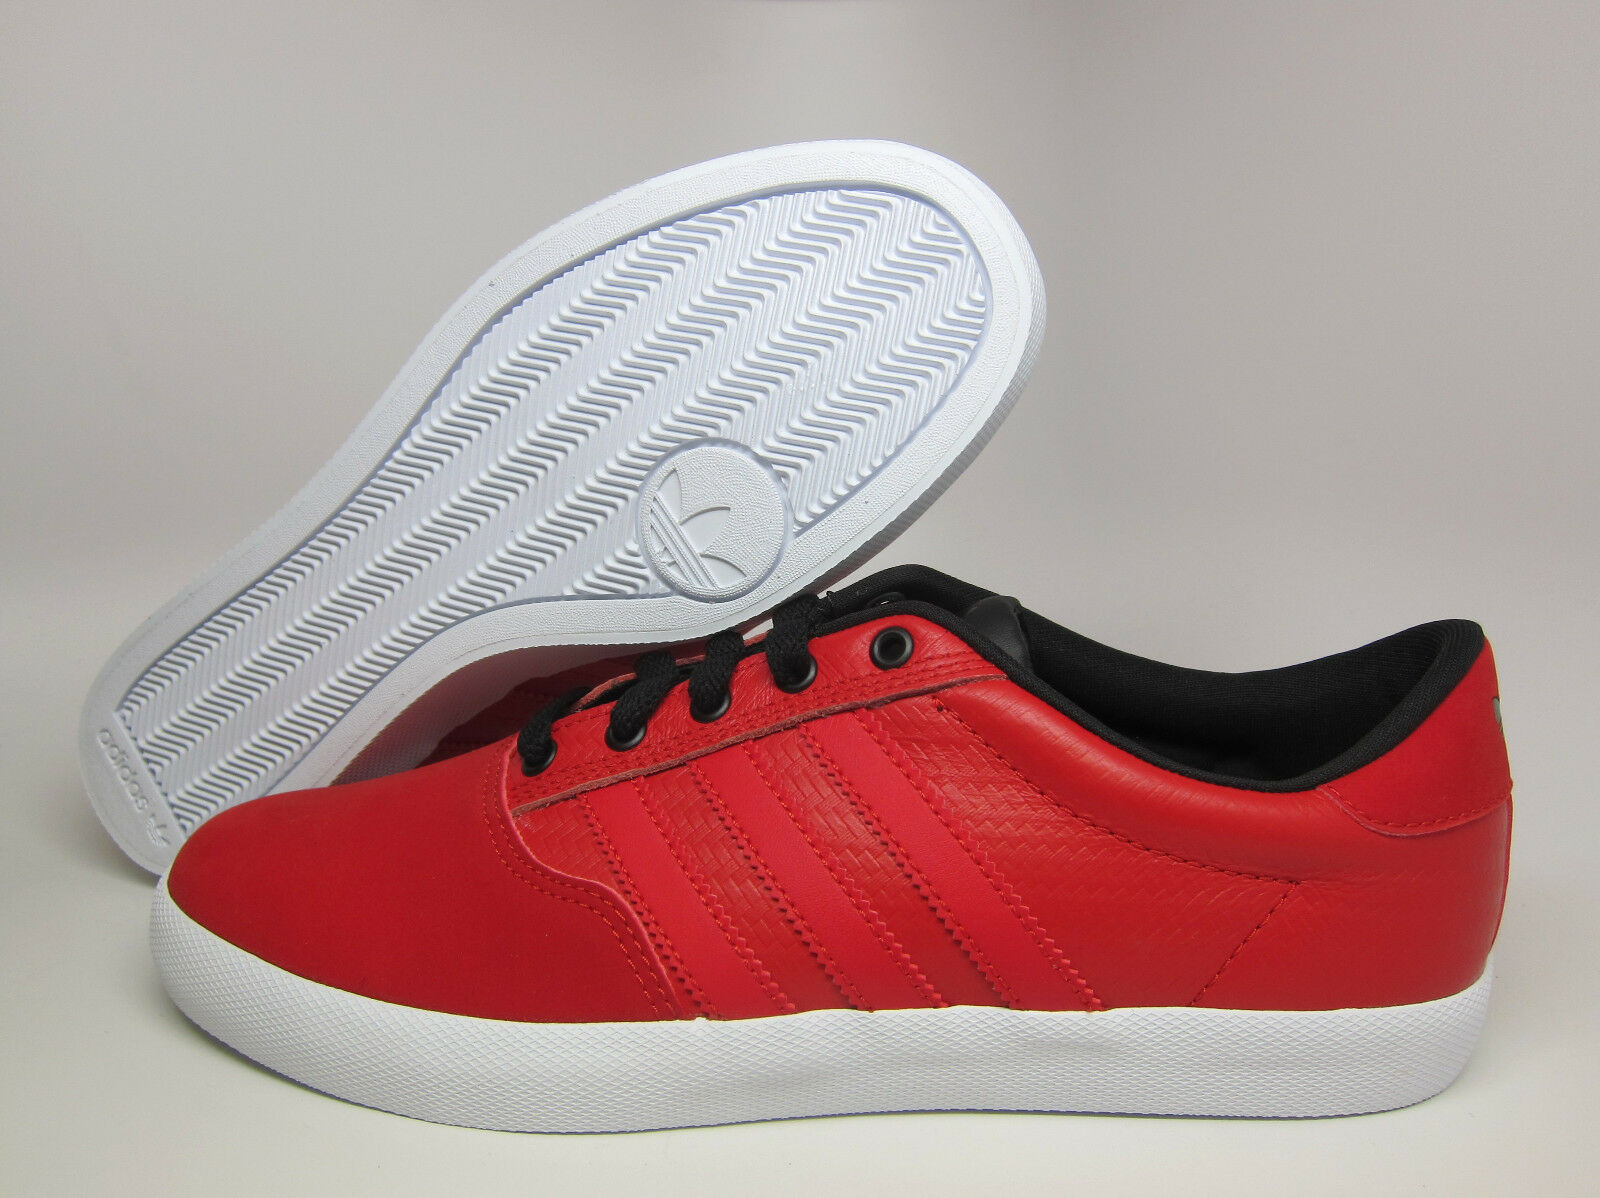 NEW MEN'S ADIDAS ORIGINALS MC LOW SHOES  Price reduction  LIGHT SCARLET//WHITE Wild casual shoes